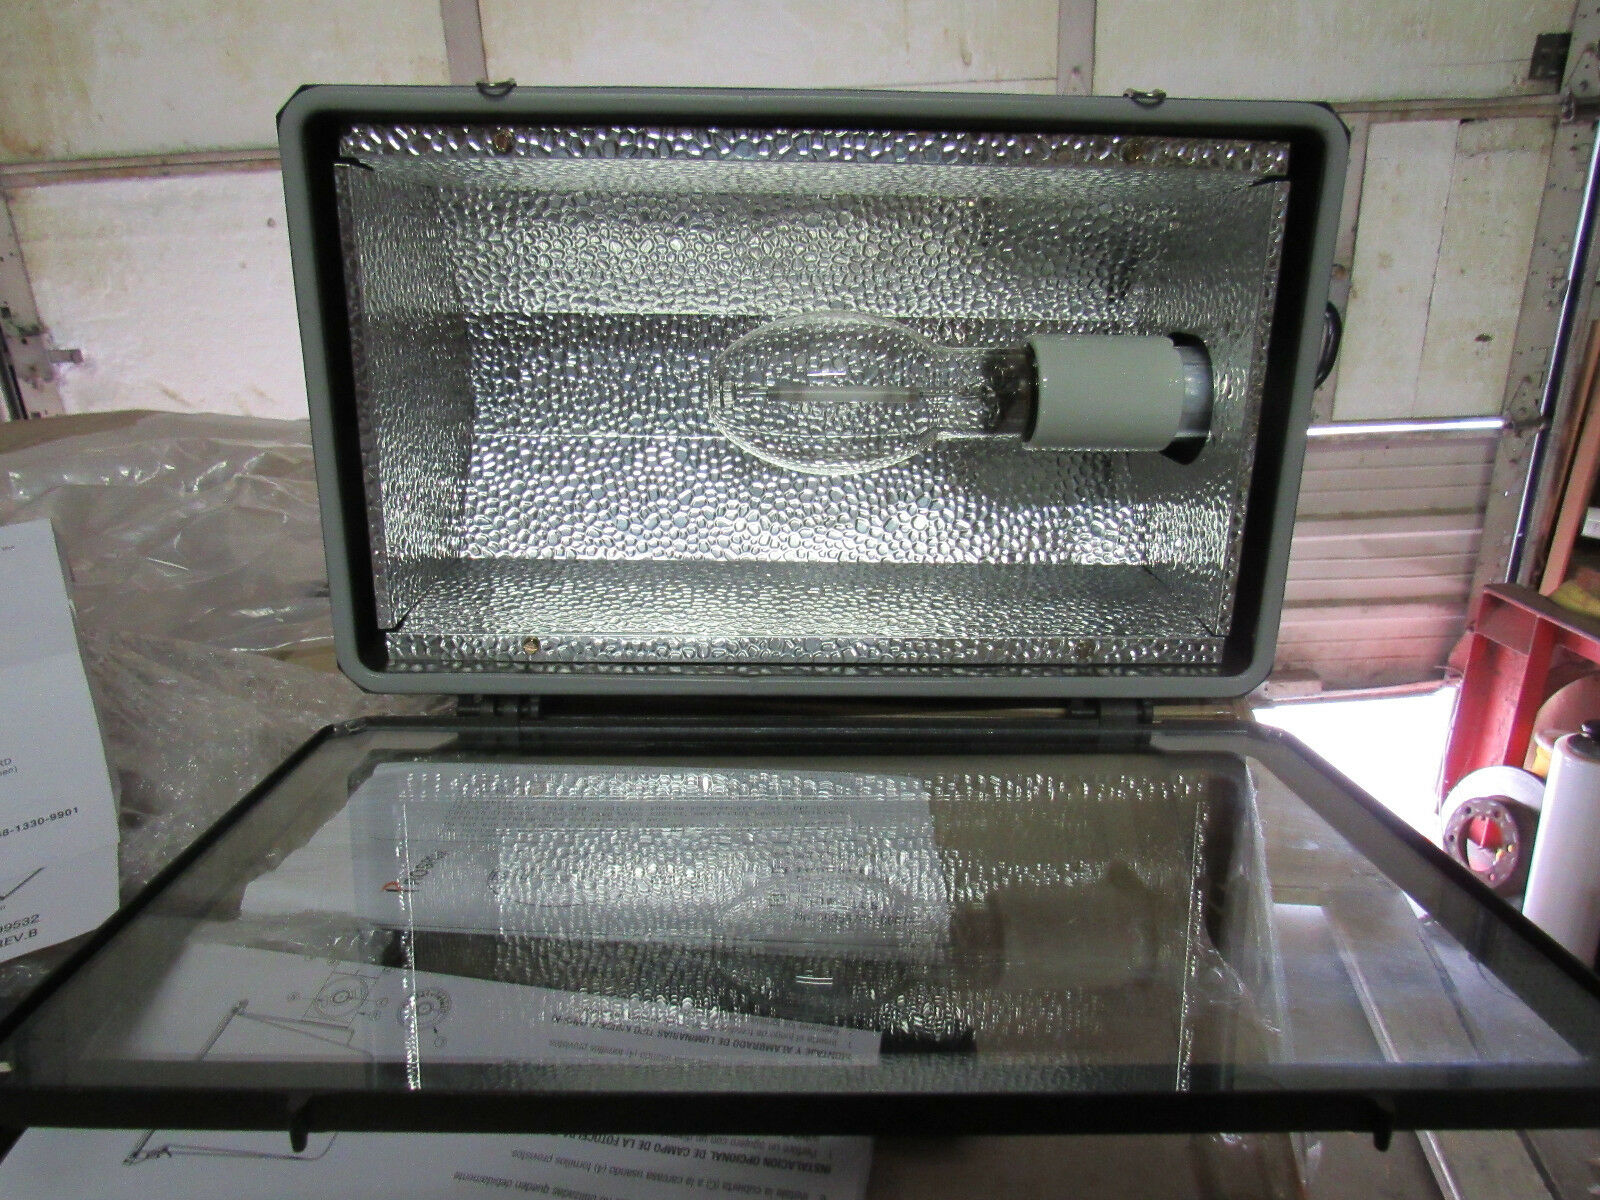 MULTI-VOLTS   M031 Hubbell MHS-Y150S8 Miniliter Wide Beam Floodlight 150 WATTS